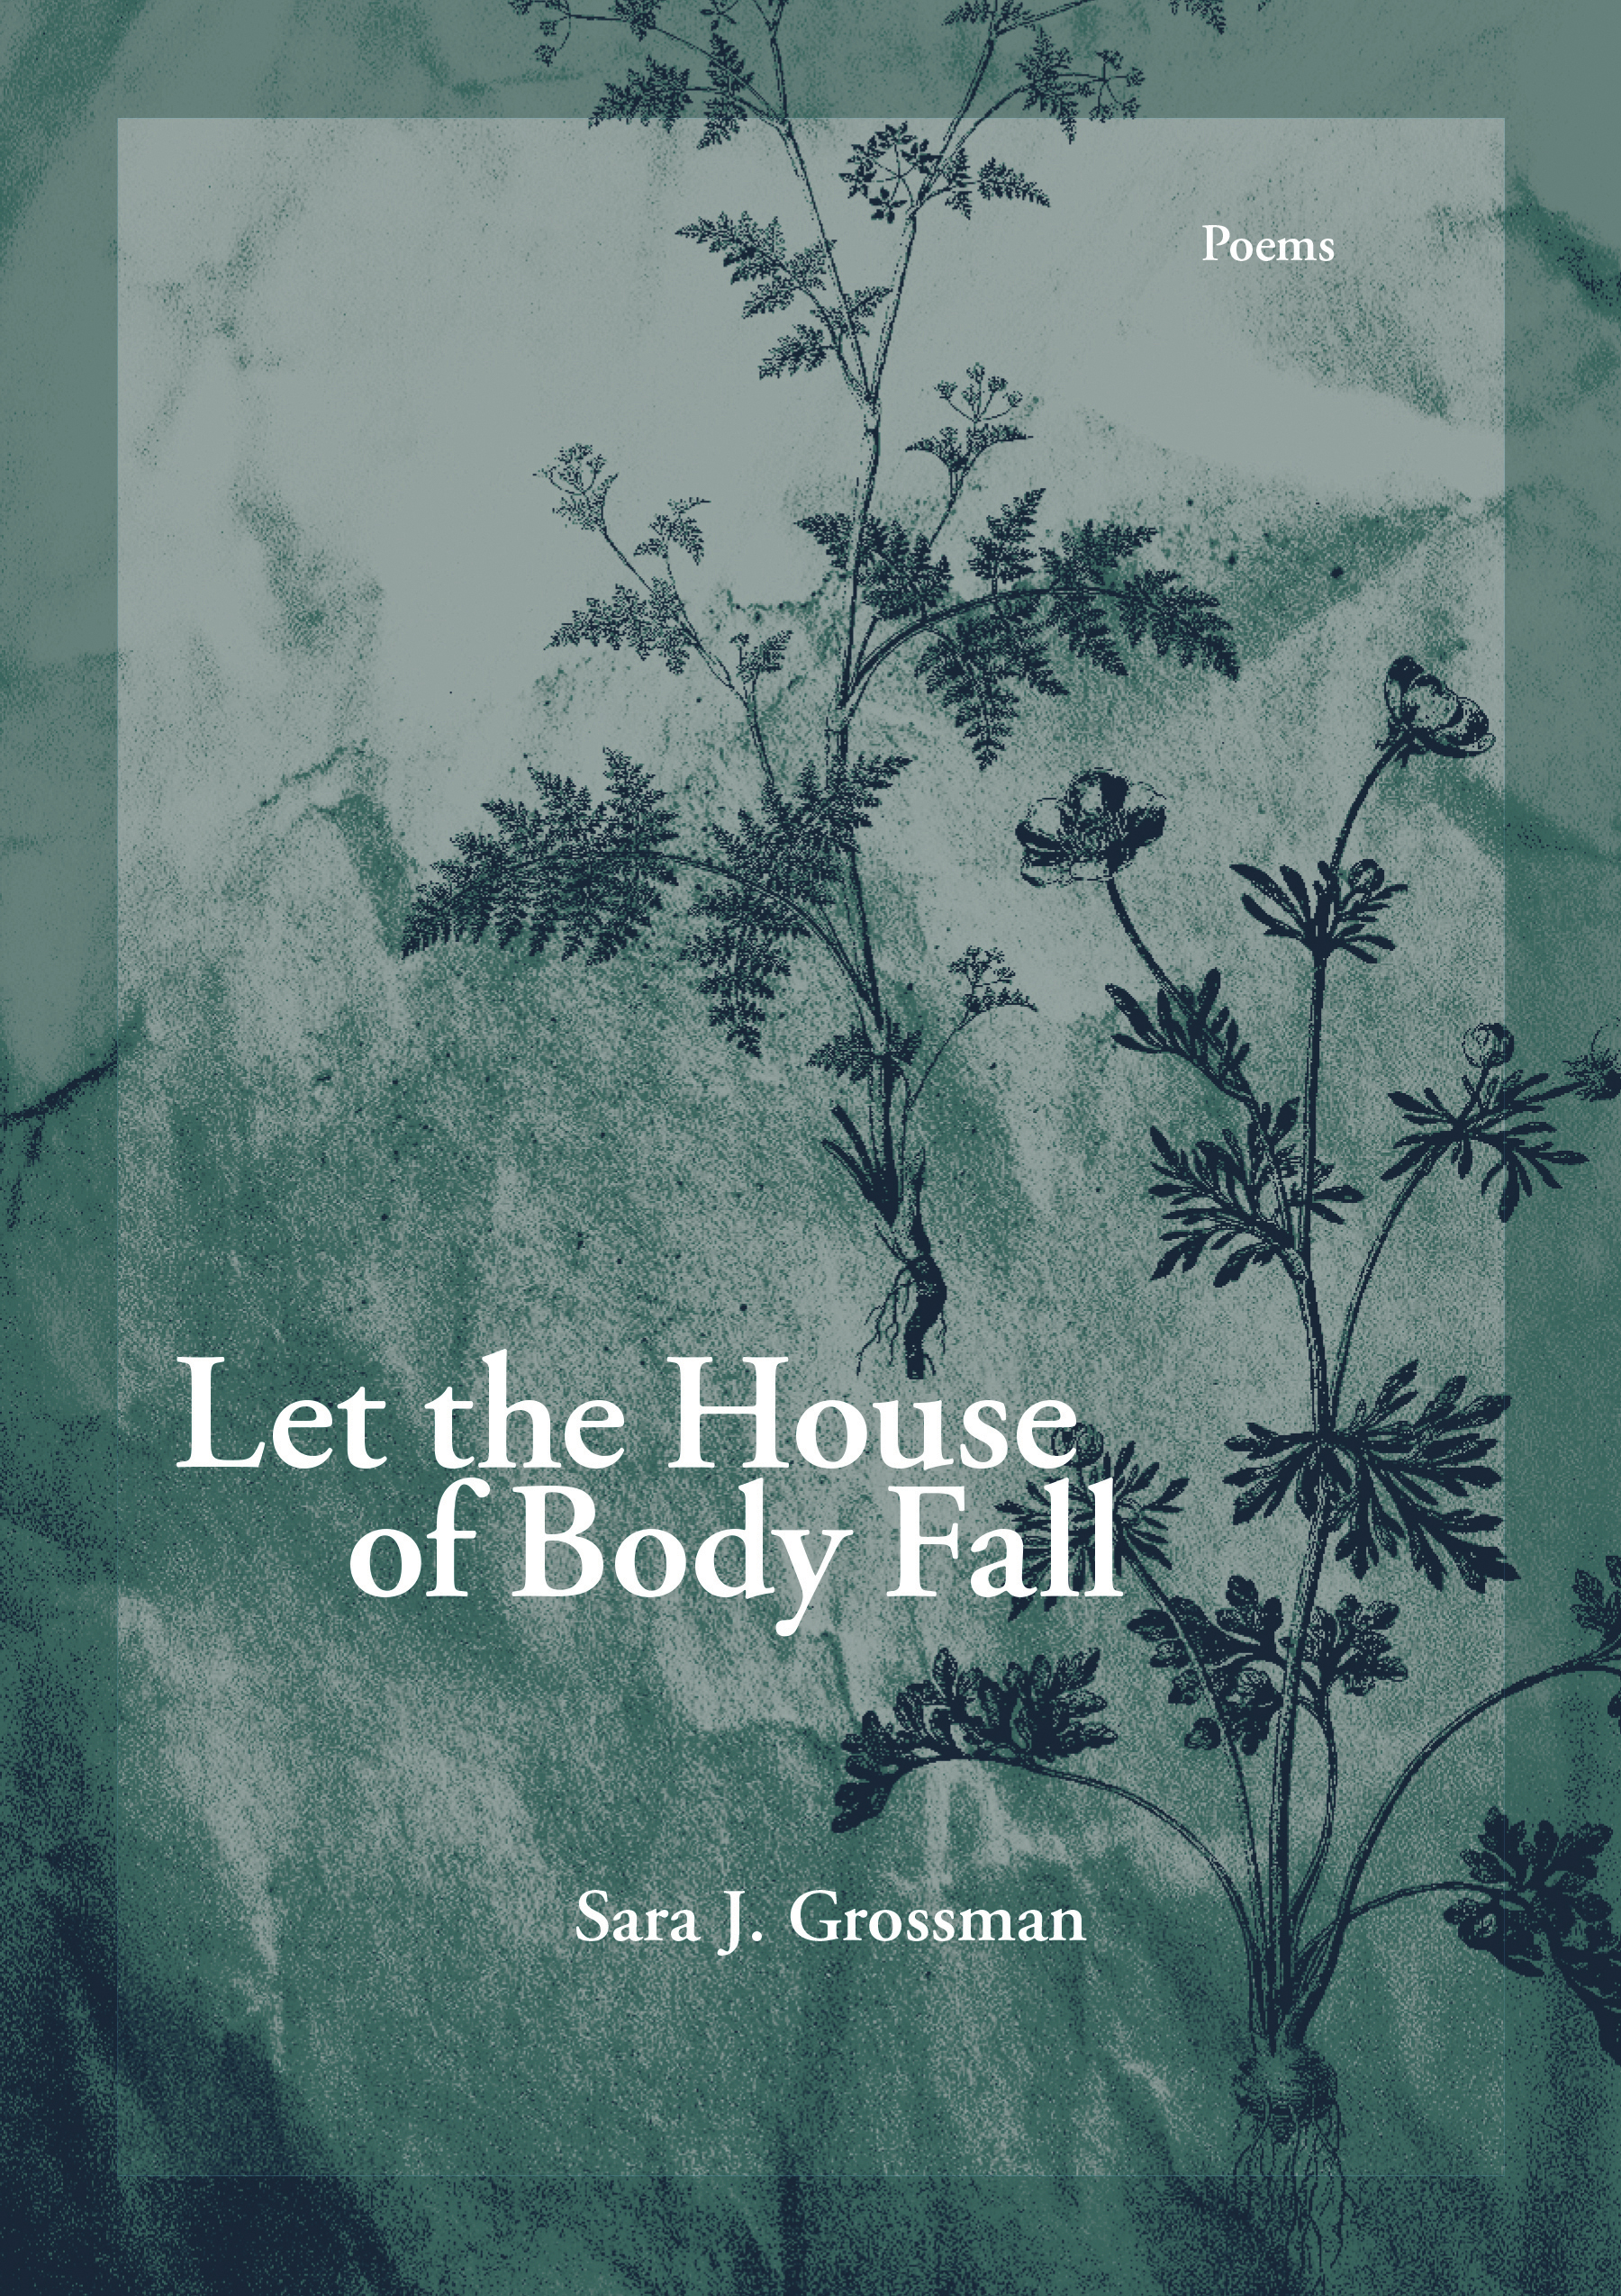 Let the House of Body Fall